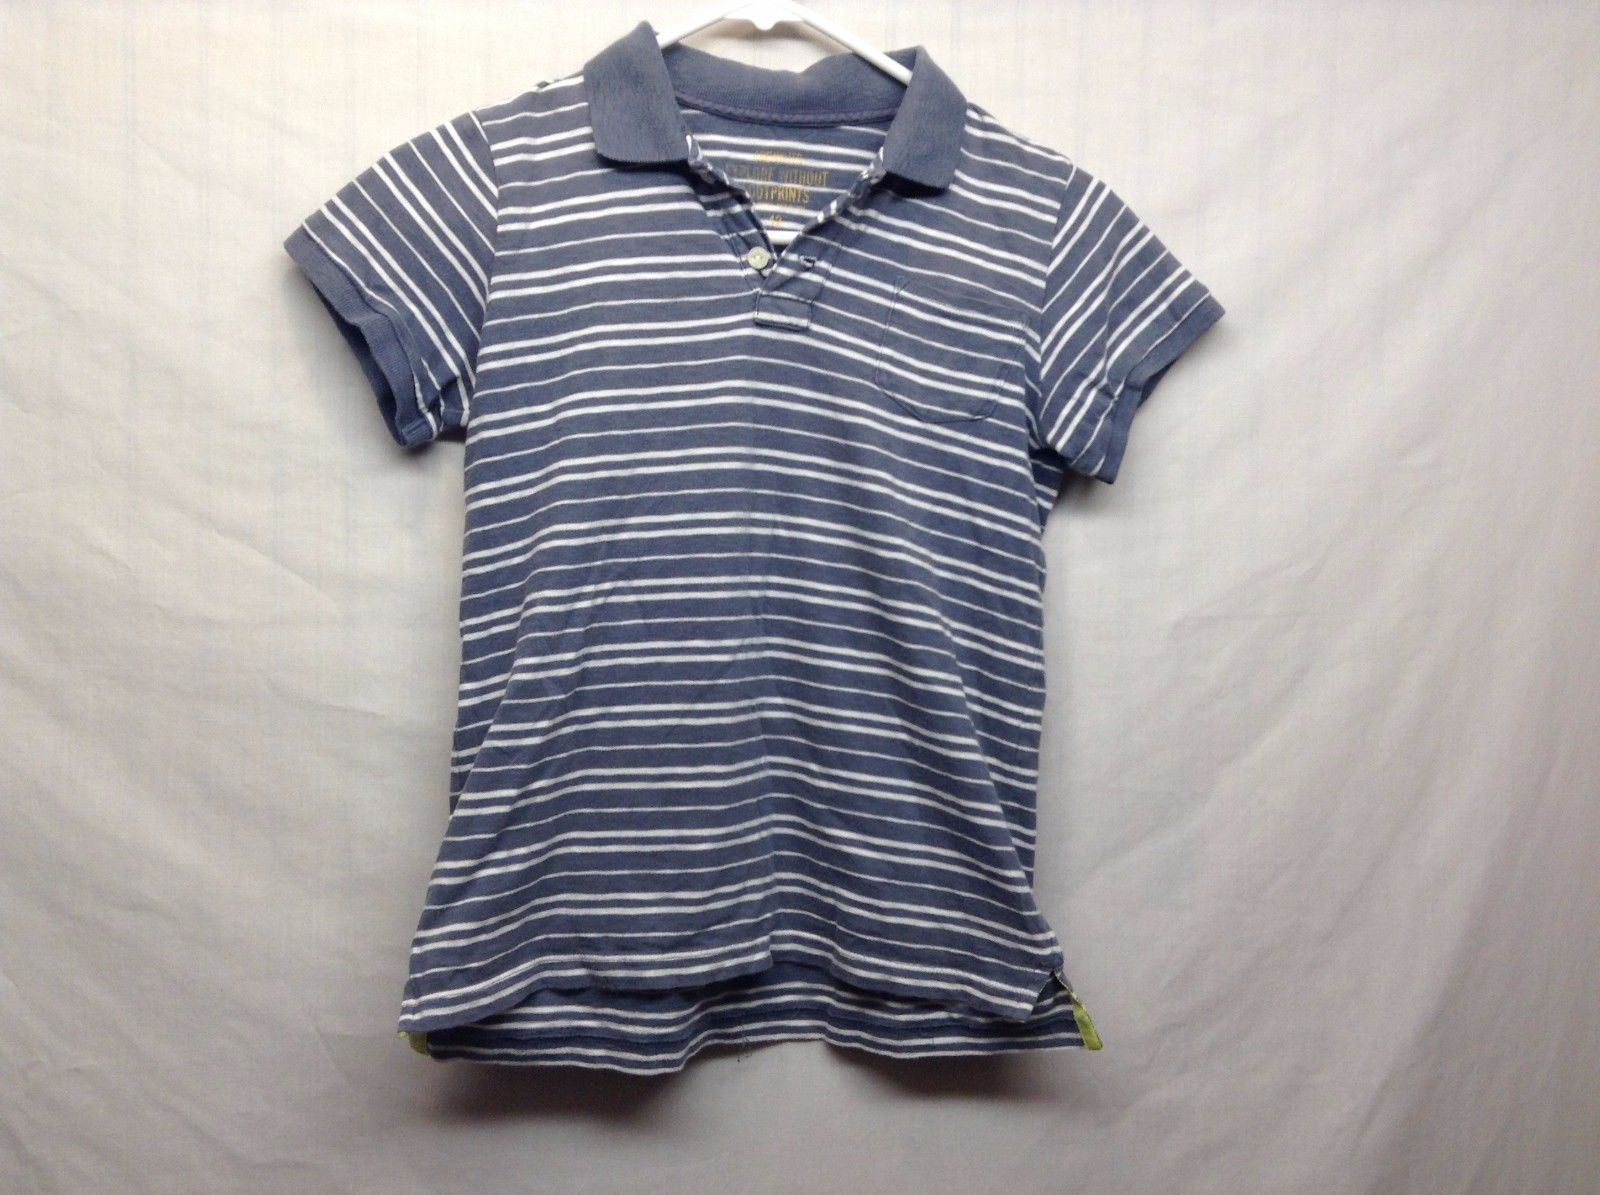 Crewcuts Striped Short Sleeve Gray White Collared POLO Sz 12 Kids